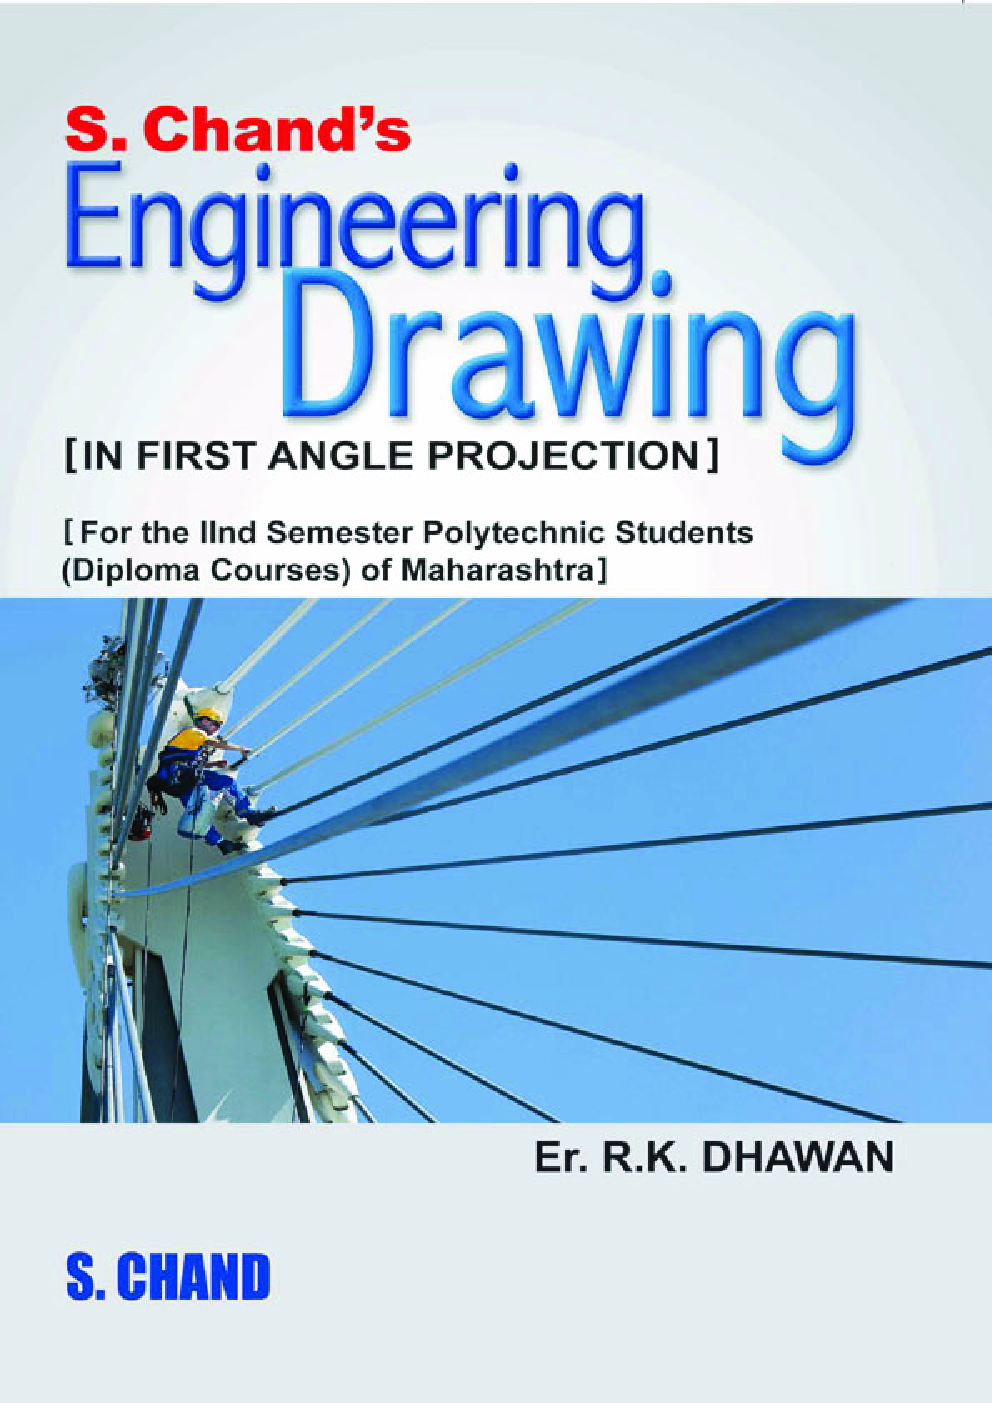 Engineering Drawing - Page 1